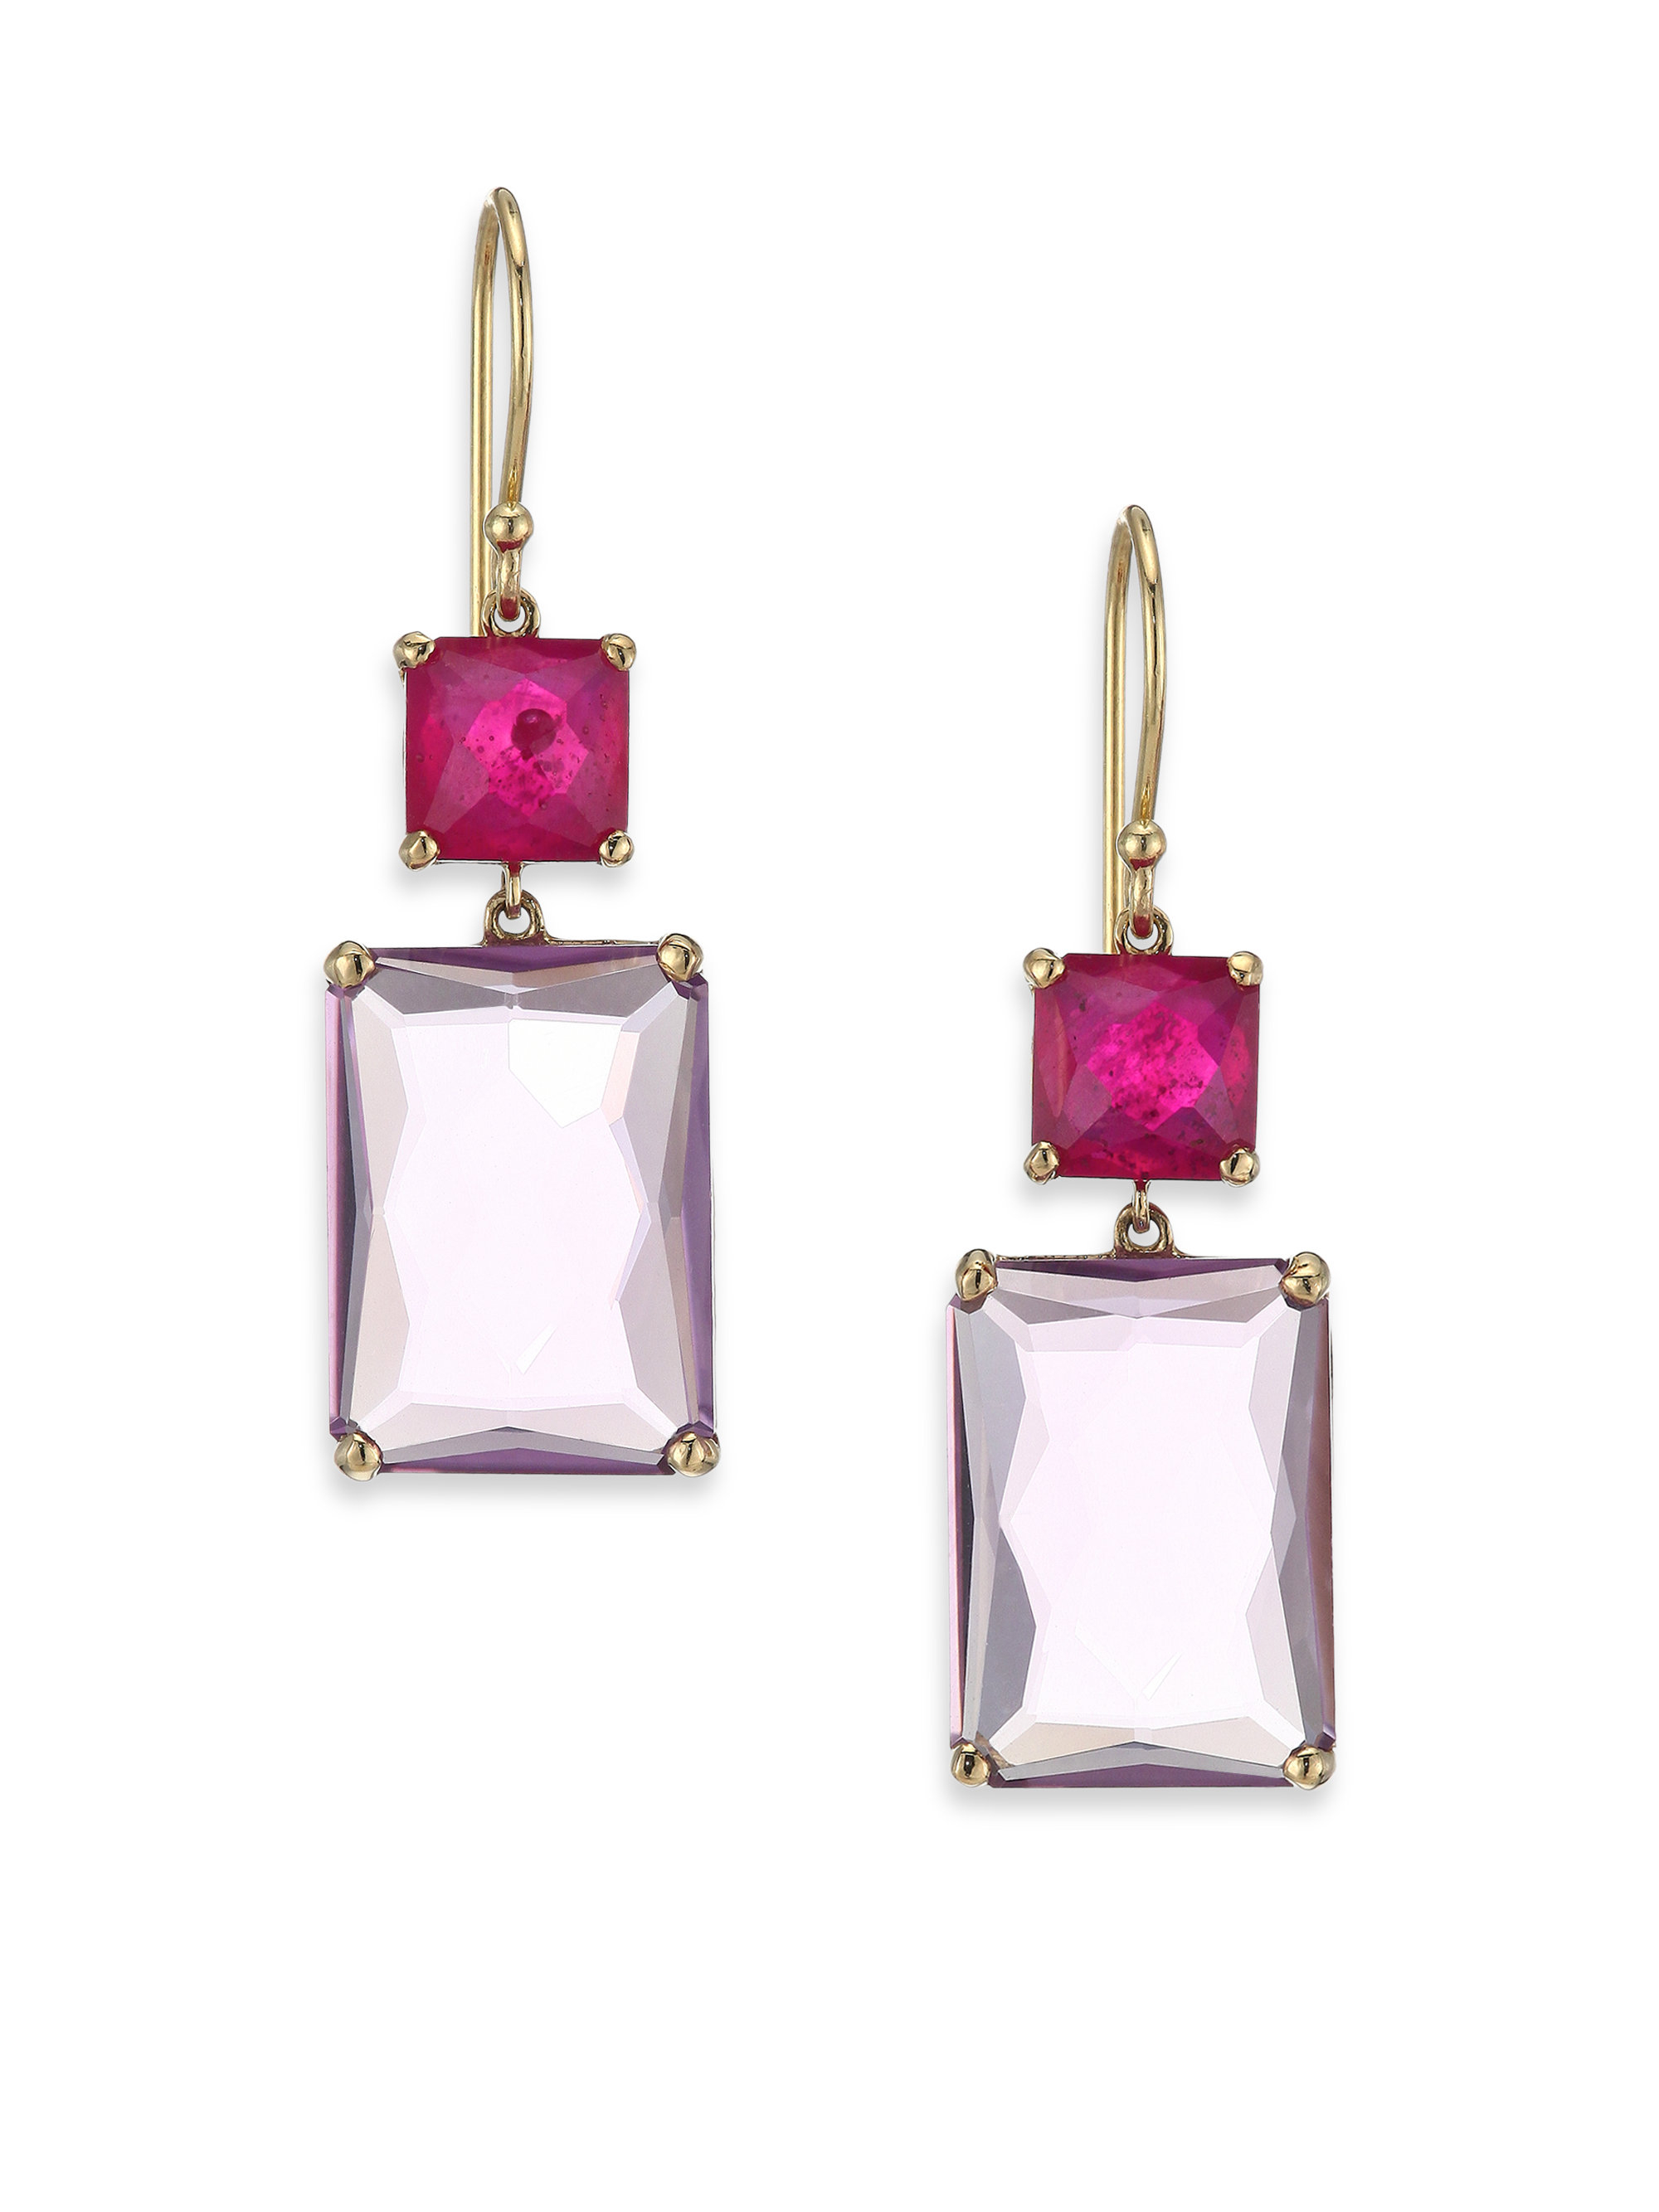 Ippolita 18k Gold Rock Candy Gelato Multi-Stone Drop Earrings in Aurora 3vY6Uq